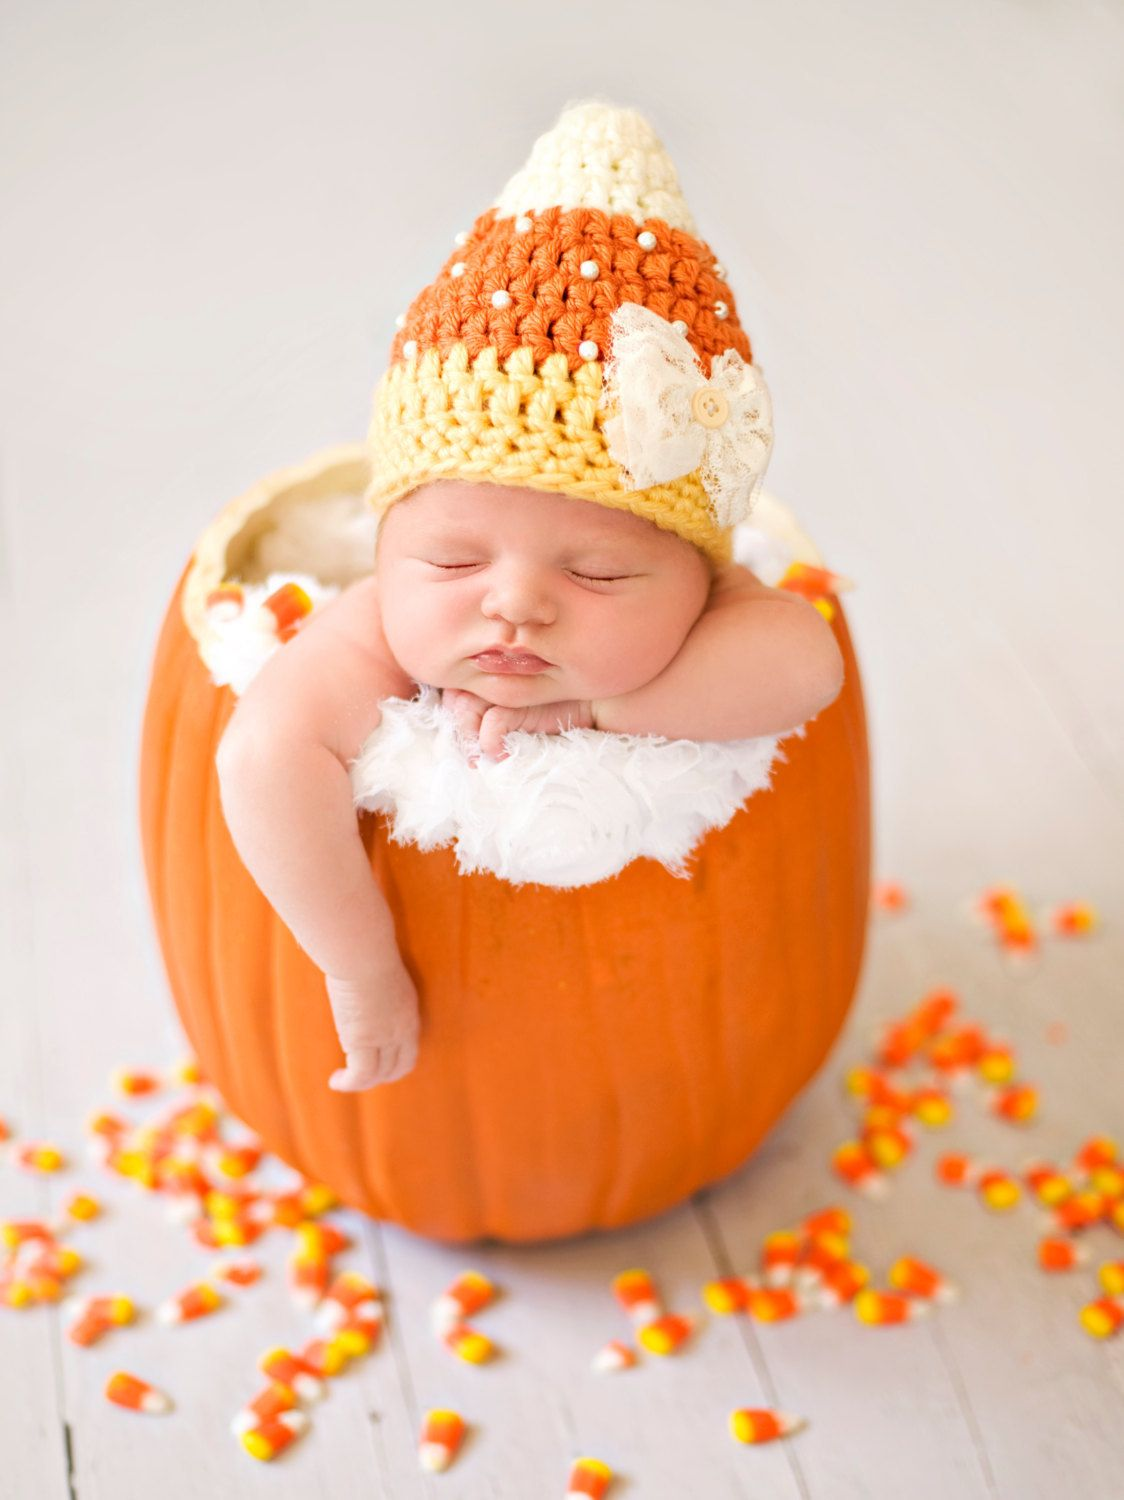 Newborn Candy Corn Hat Baby Girl Halloween Costume Crochet Etsy Fall Baby Pictures Newborn Baby Photography Baby Photography Poses